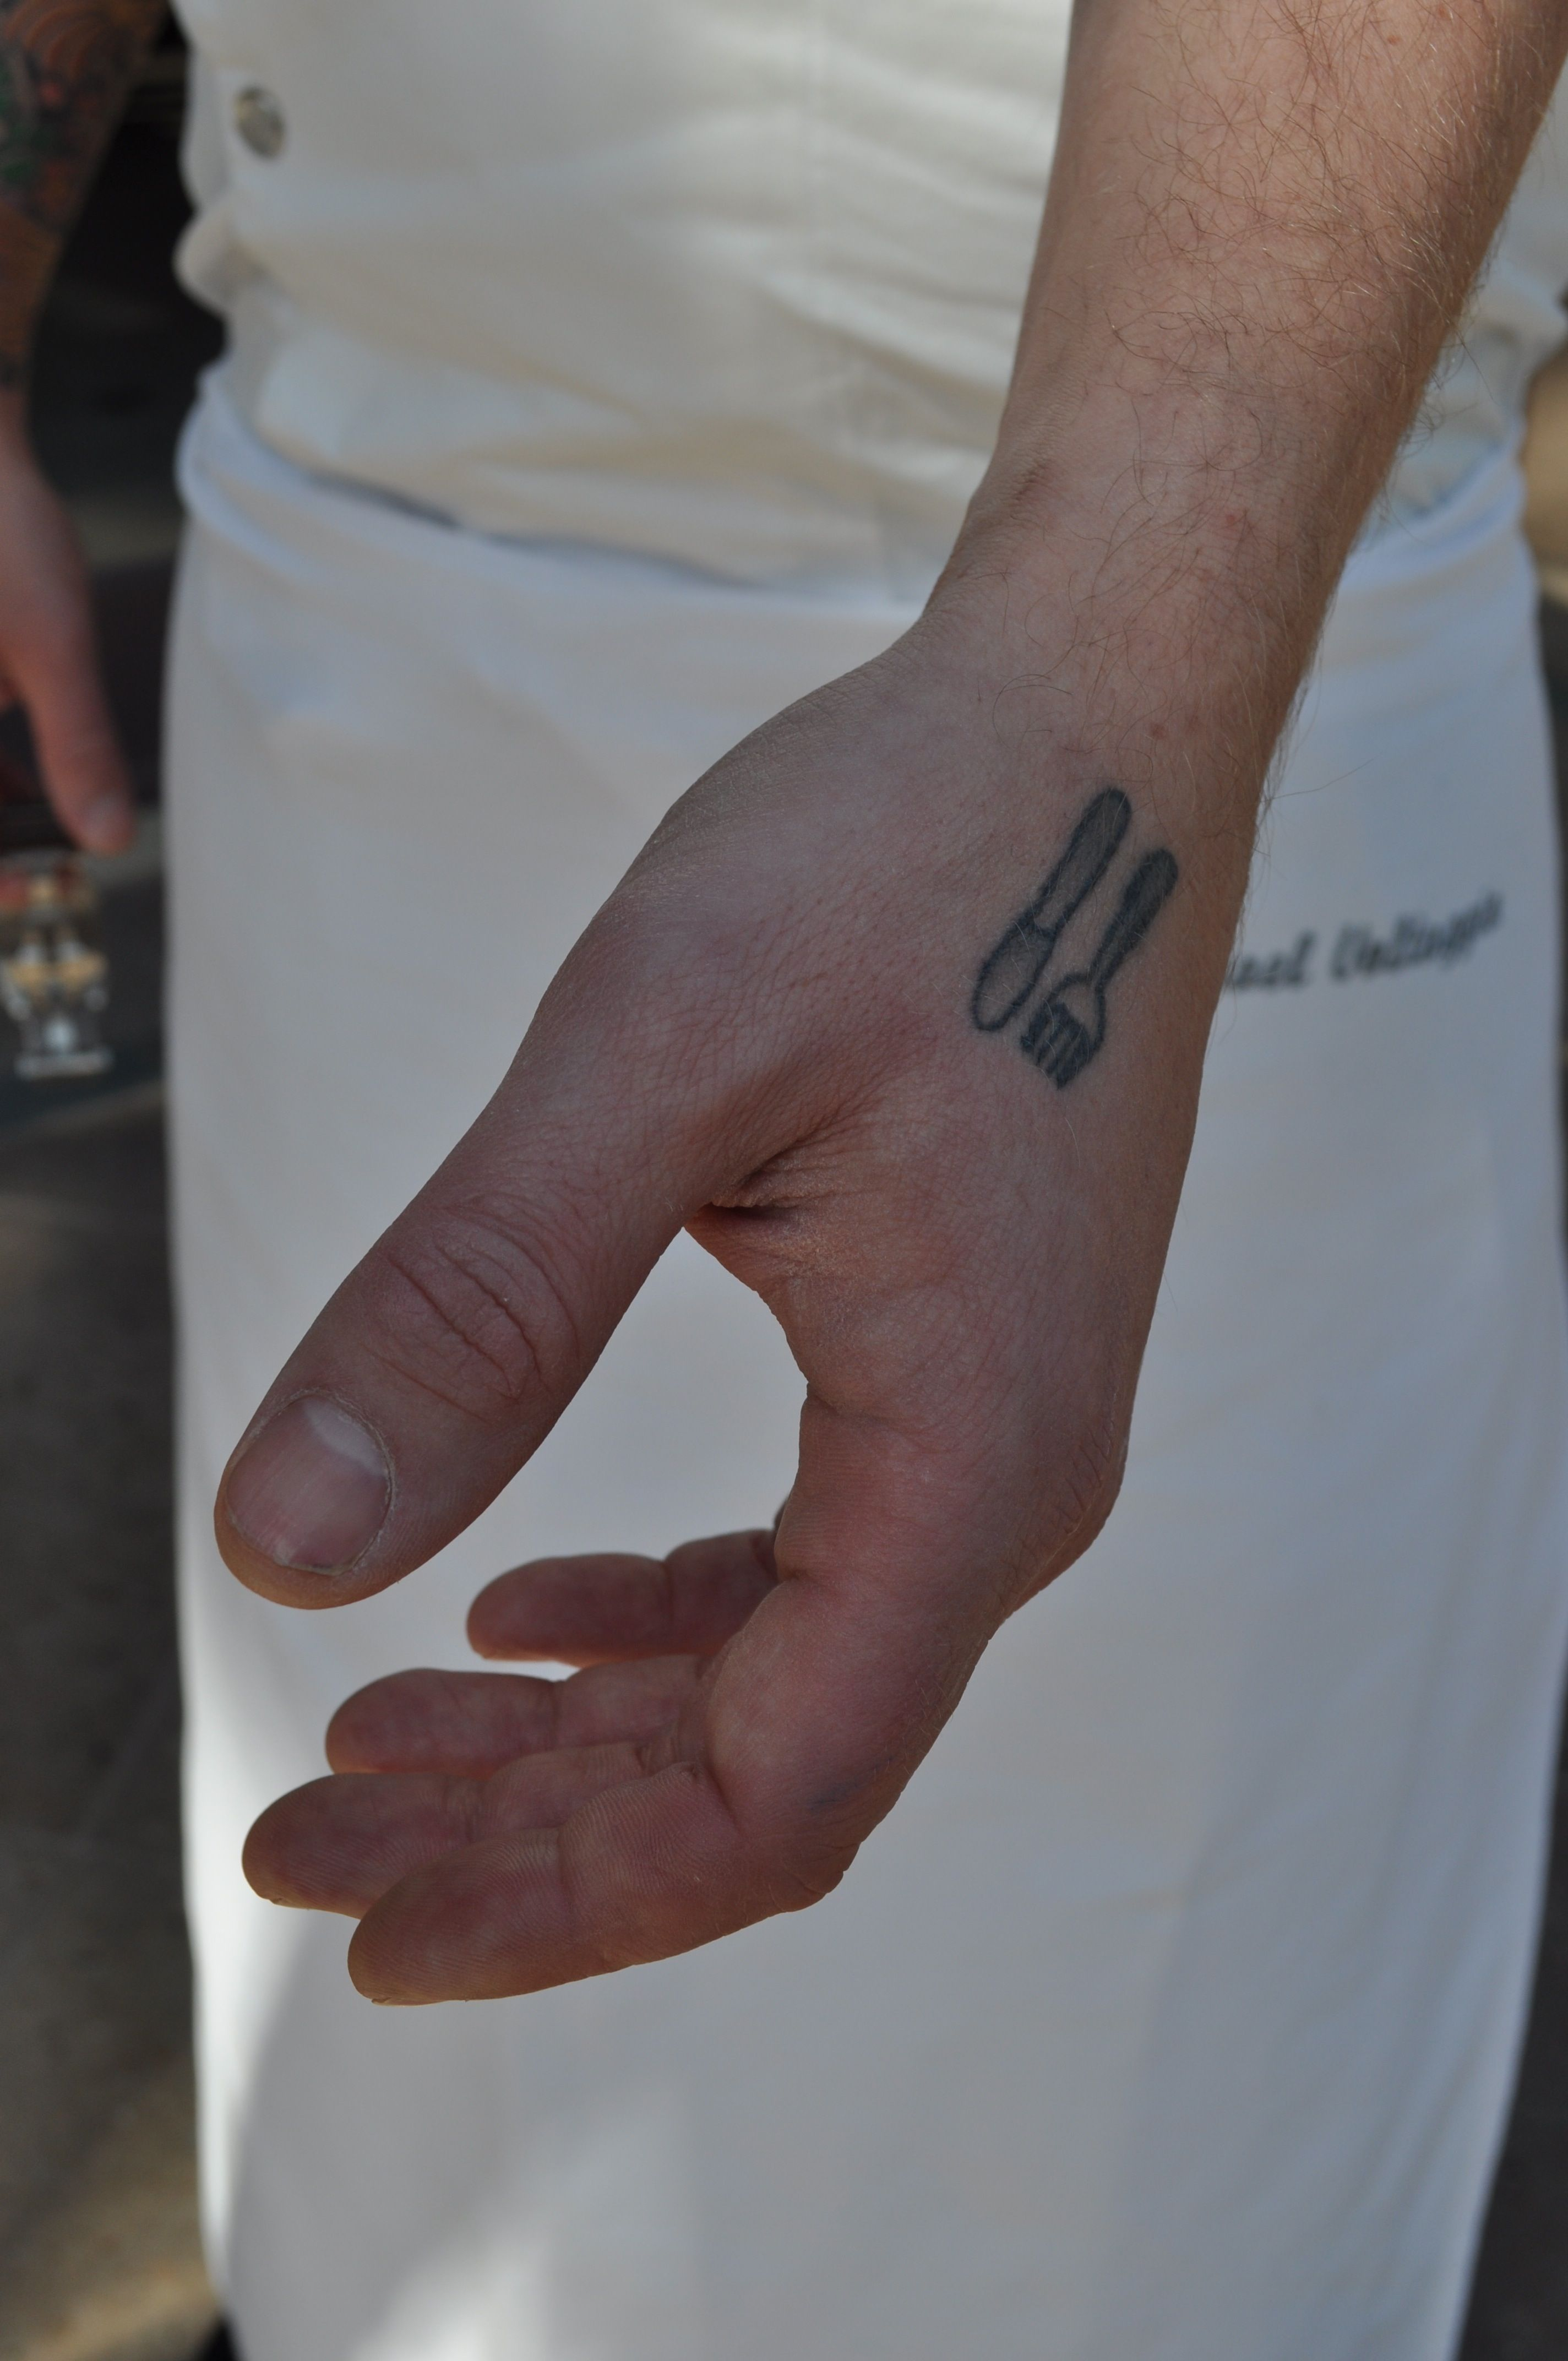 a63262624 Chefs With Tattoos - LA Weekly | Tattoos & Piercings :D | Chef ...